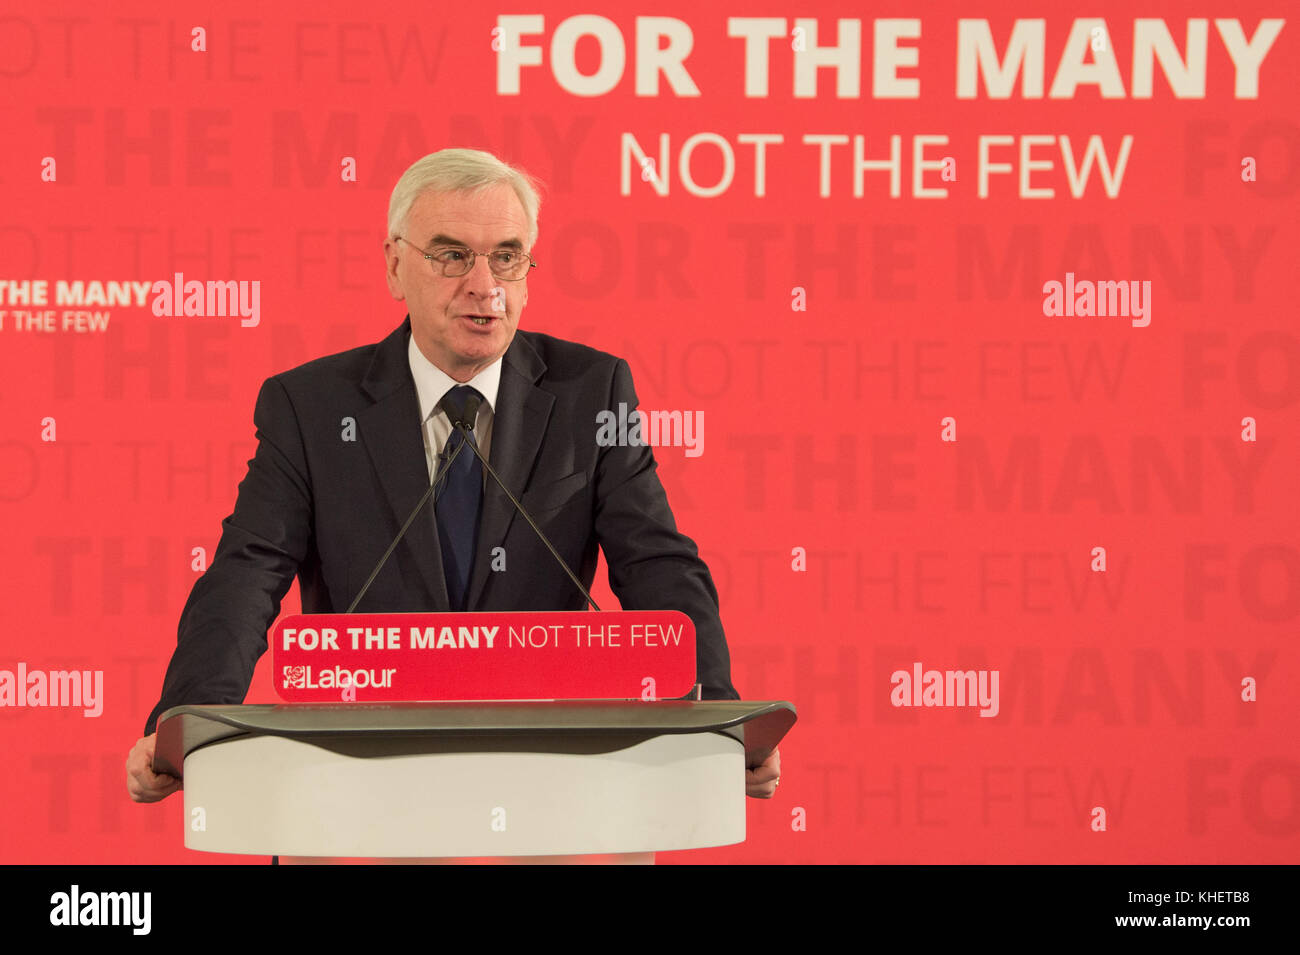 London, United Kingdom. 16th November 2017. With less than a week to go until the Autumn Budget, Labour's Shadow - Stock Image